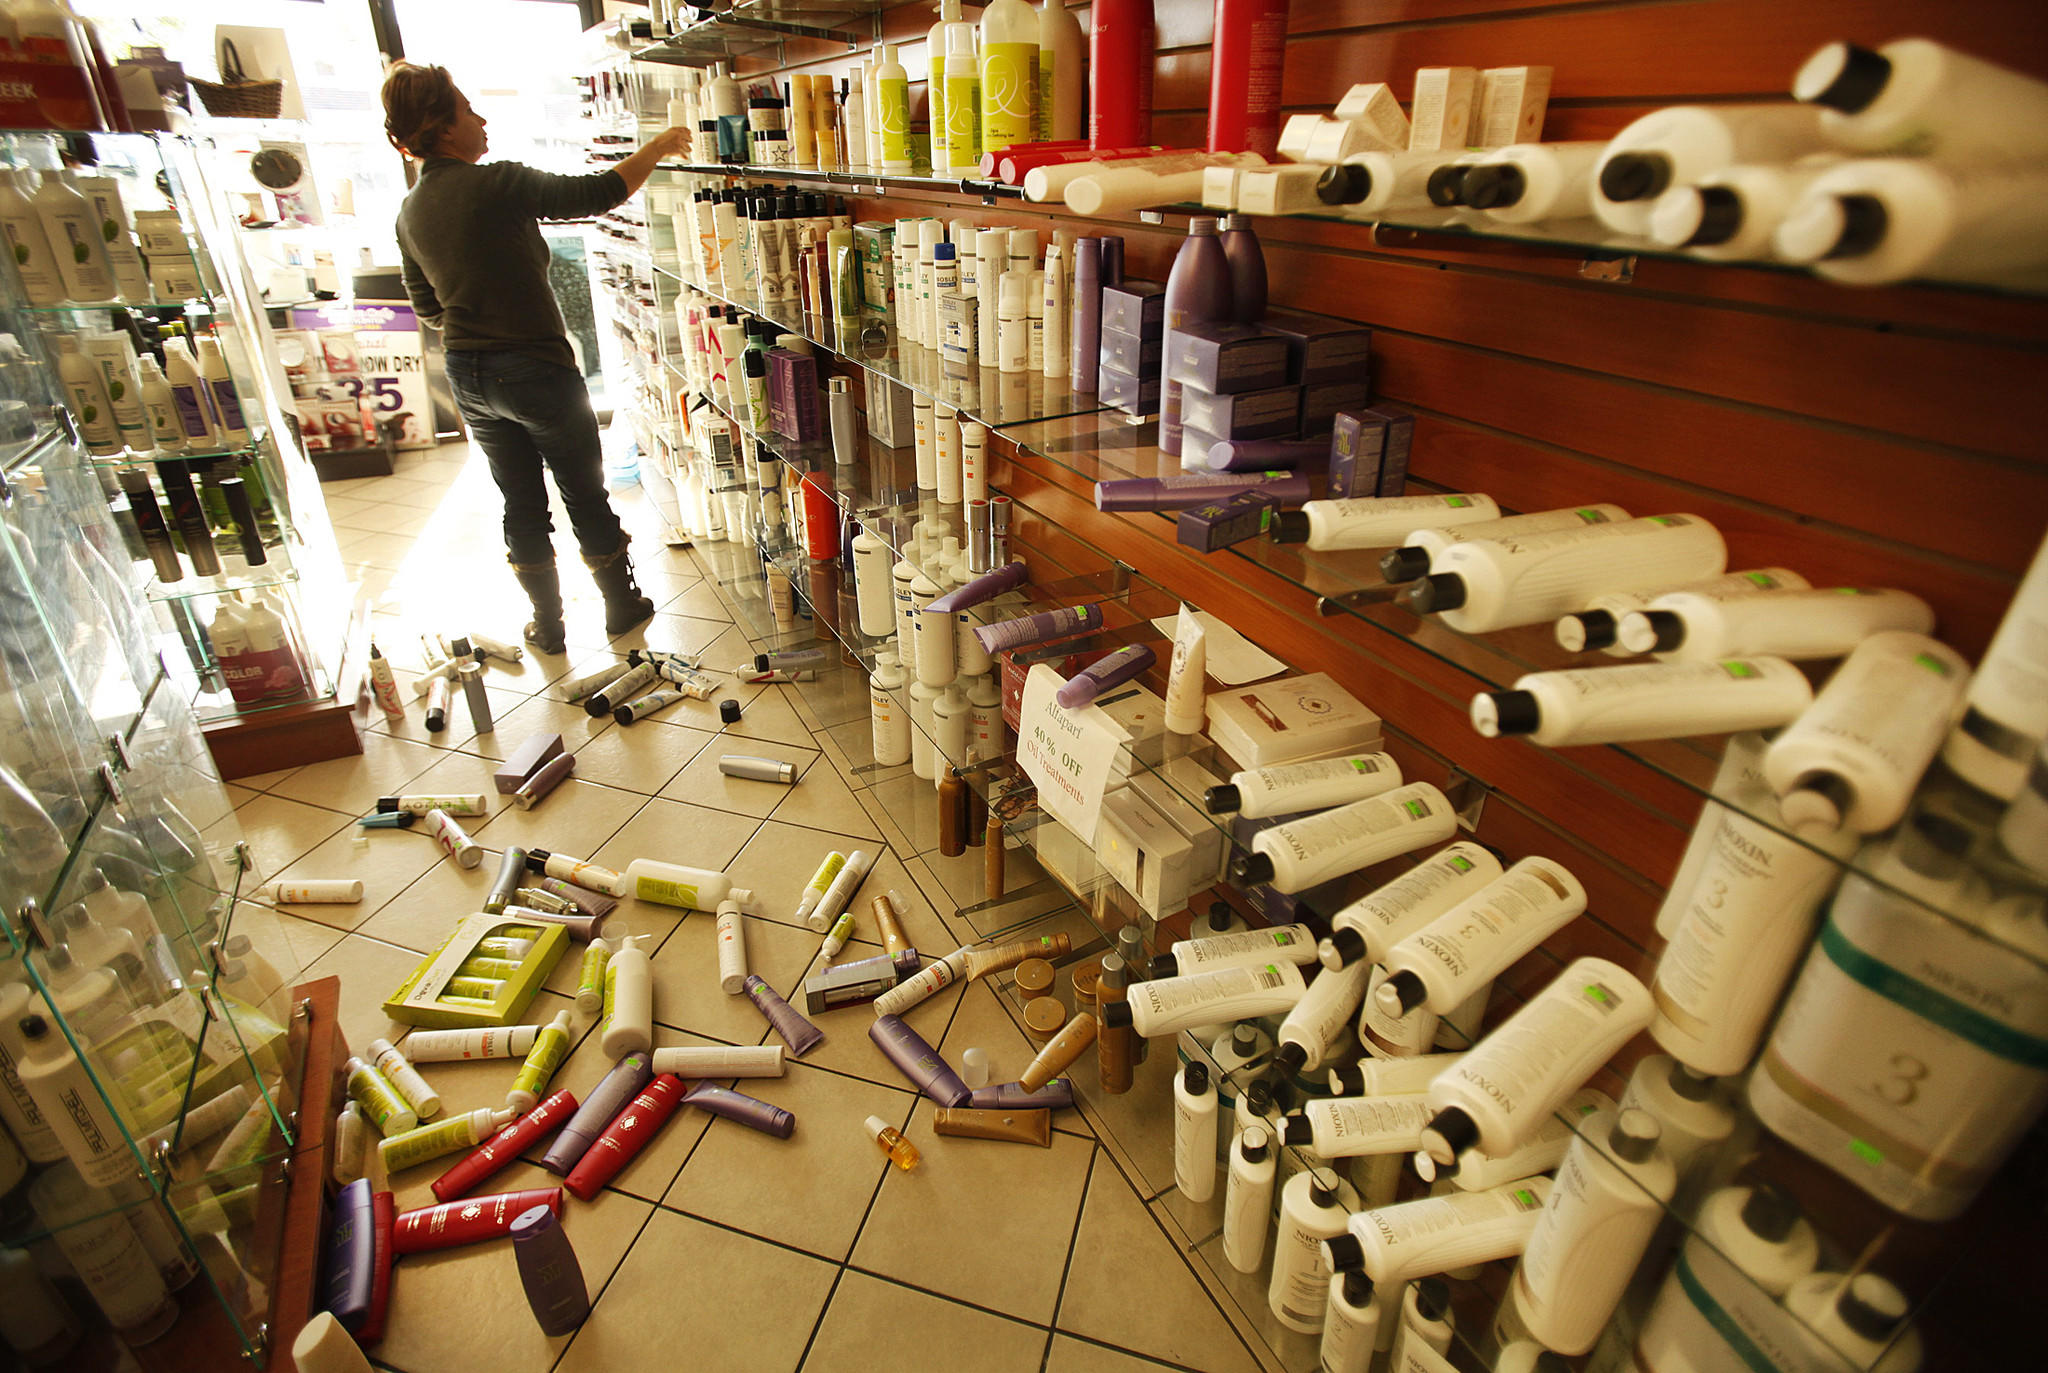 Roya Alagh, manager of Sherman Oaks Beauty Center, cleans up merchandise knocked from store shelves by a magnitude 4.4 earthquake that struck Los Angeles about 6:25 a.m. Monday.